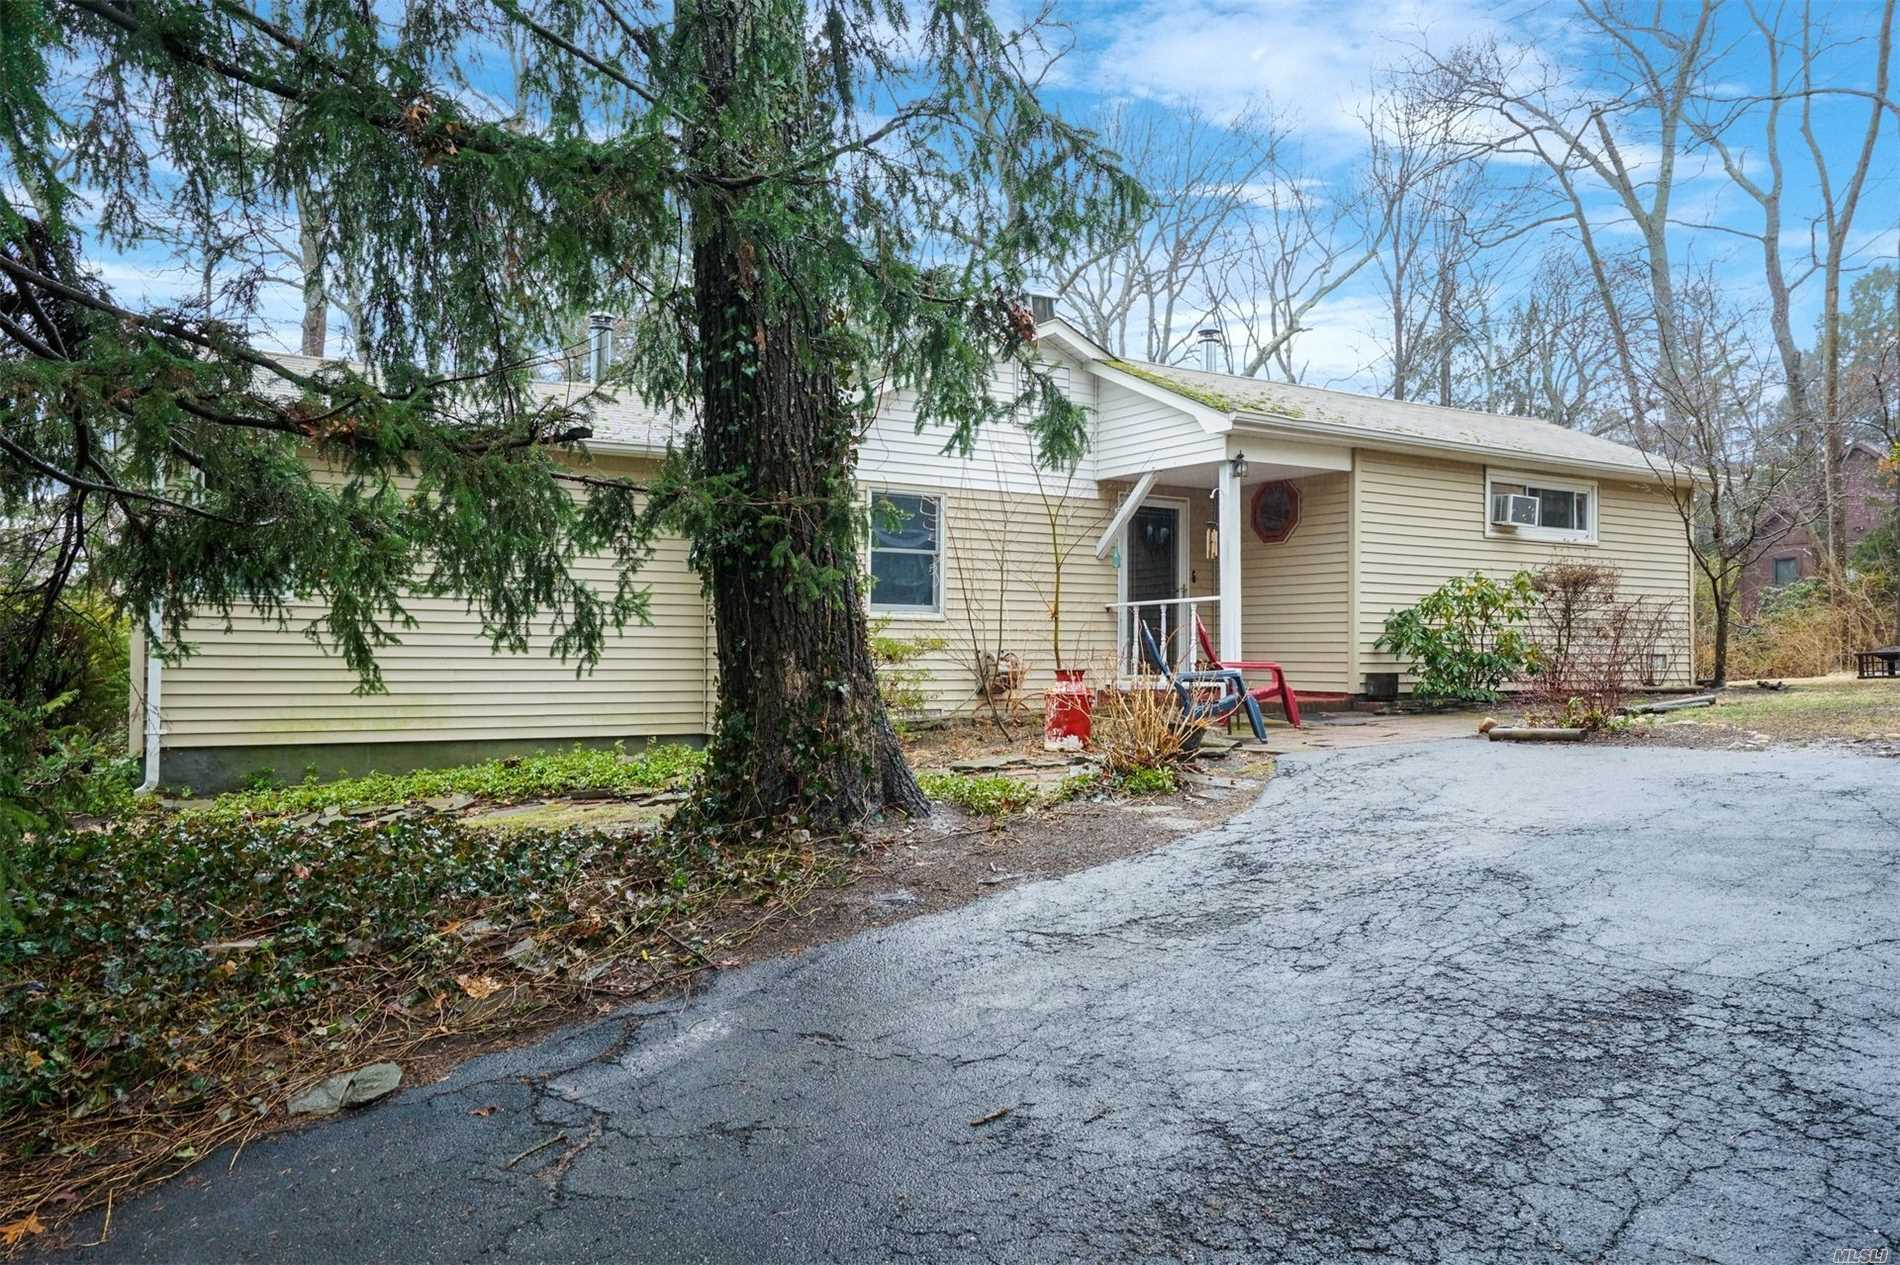 Charming Ranch on a Cul de Sac in the Terraces, a Private Beach Community. Living Room w/Frpl & Cathedral Ceiling, Den, New Bath w/Skylight, Wainscotting Walls, 2 Wood Stoves, Deeded Beach Rights. Refrigerator to be Replaced.